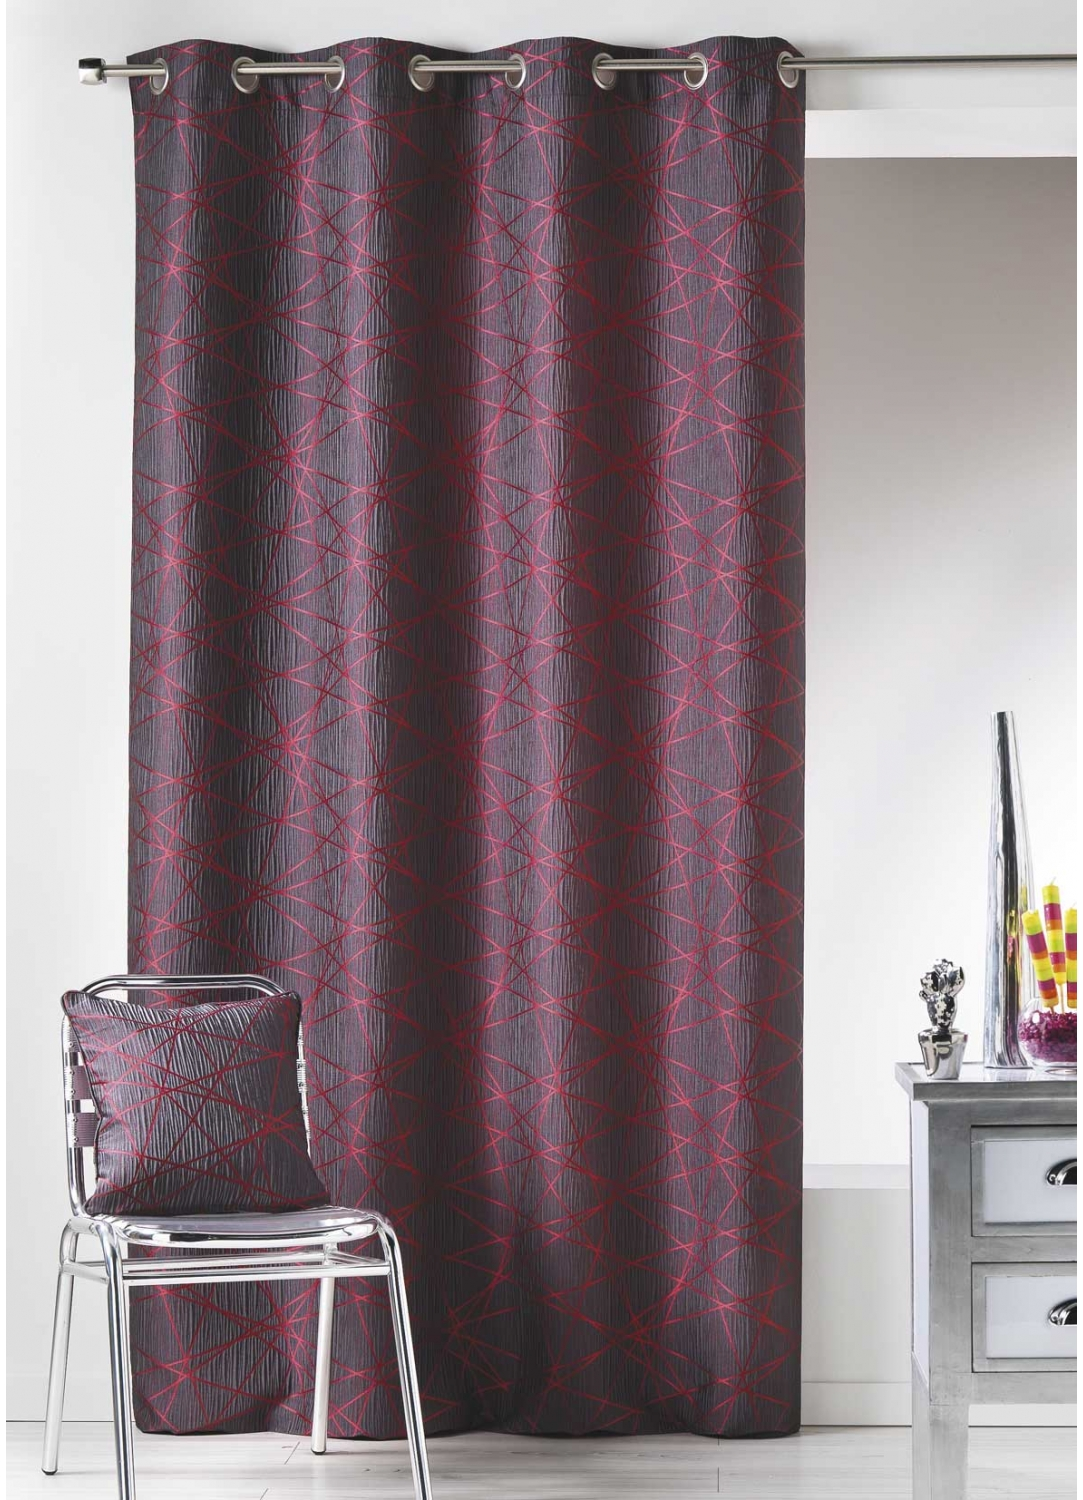 rideau en jacquard imprim s design framboise bordeaux lin gris homemaison vente. Black Bedroom Furniture Sets. Home Design Ideas